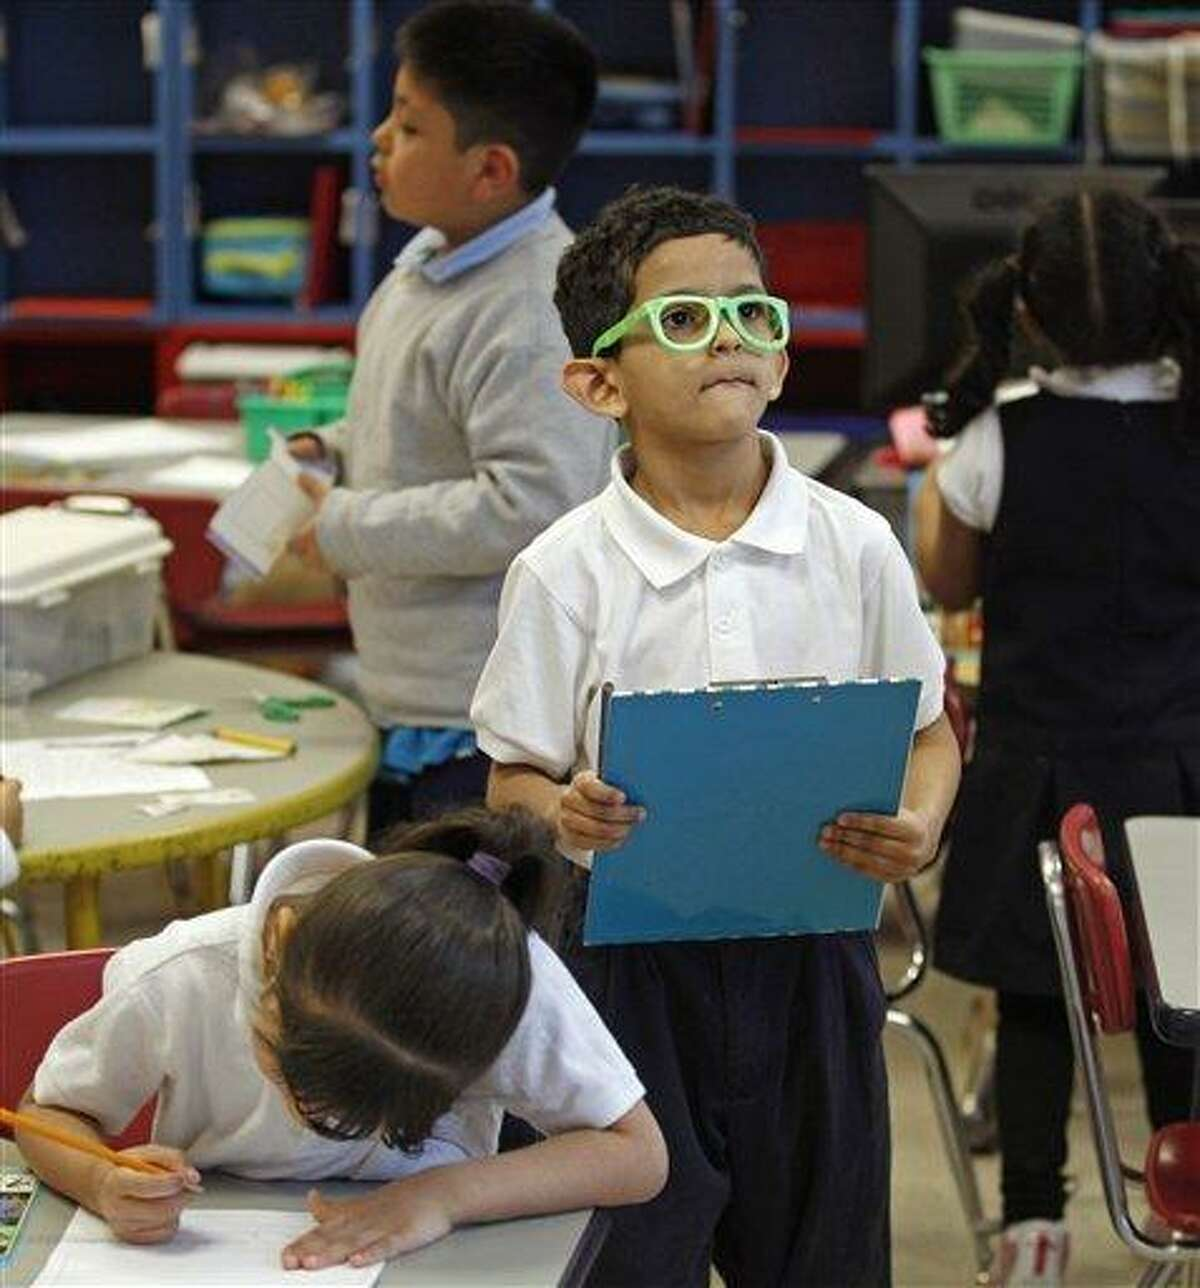 Gabriel Feliciano scans the room for clues while working on a worksheet in a kindergarten class at the Diloreto Magnet School in New Britain Wednesday. As Connecticut lawmakers consider sweeping reforms intended to close the achievement gap between wealthy and poor school districts, another gap is growing: The disparity between communities that offer full-day kindergarten and those that don't. Associated Press